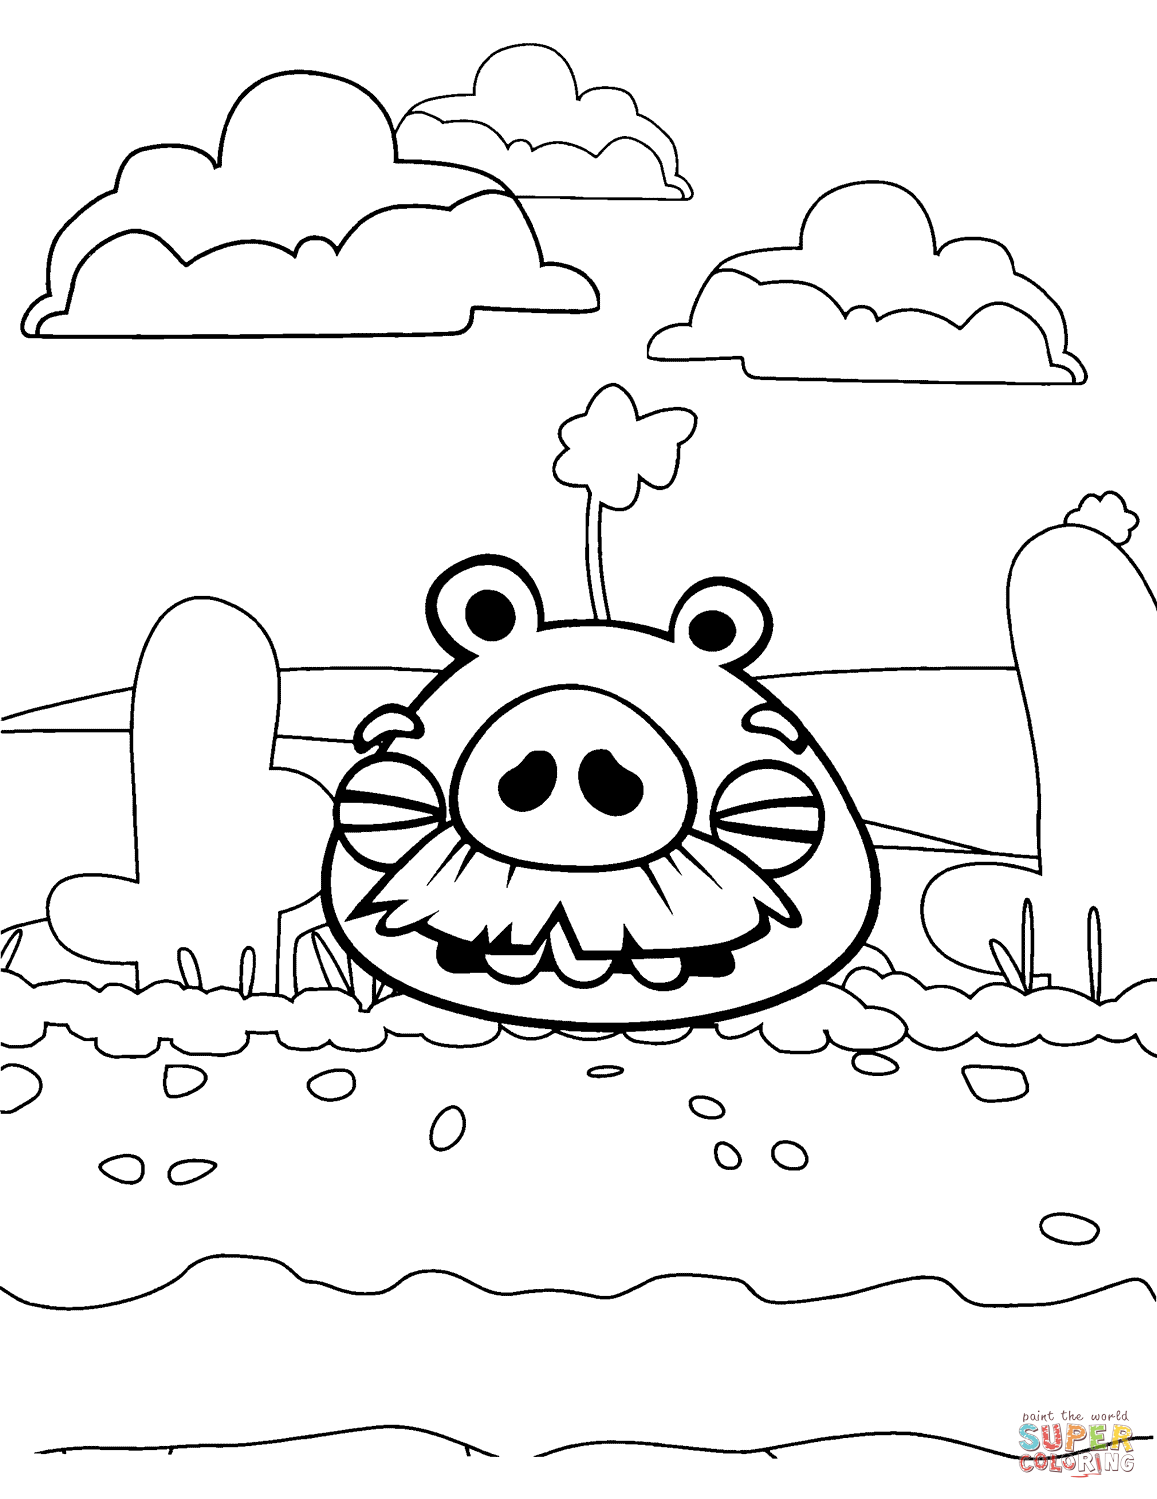 Foreman Pig In Desert Coloring Page